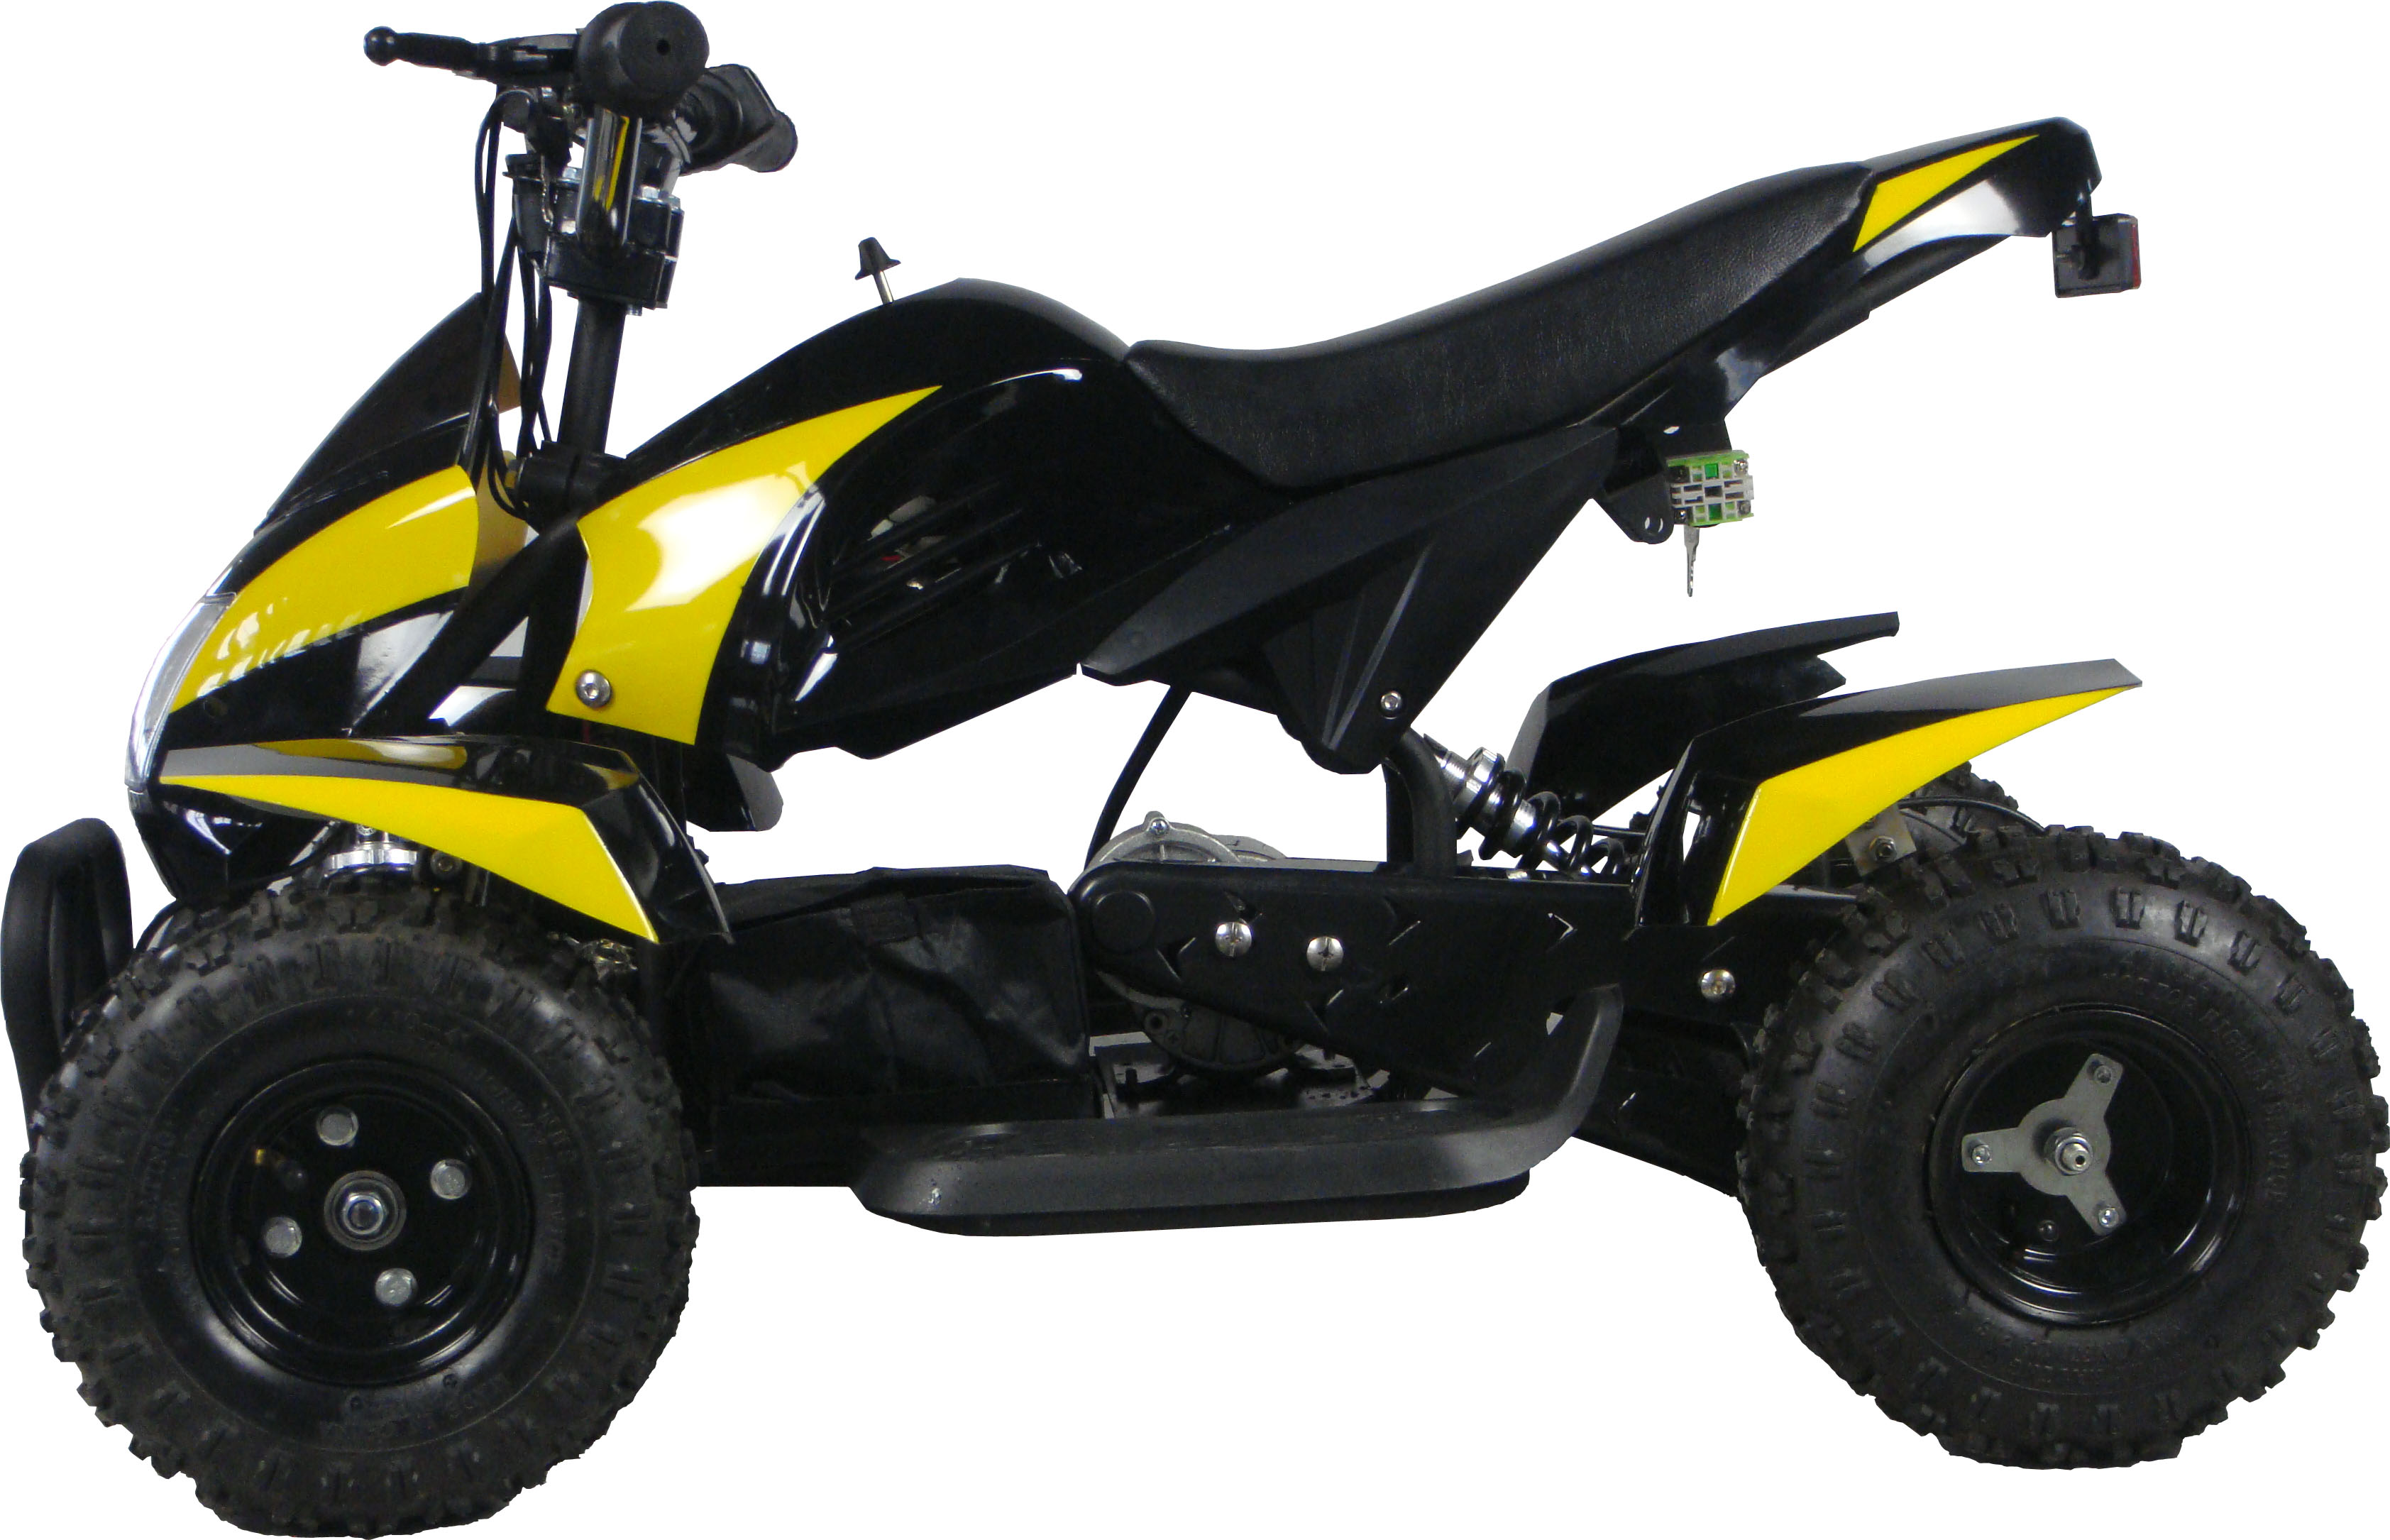 1 gobowen atv 50Cc 4 Wheeler Wiring Diagram at nearapp.co